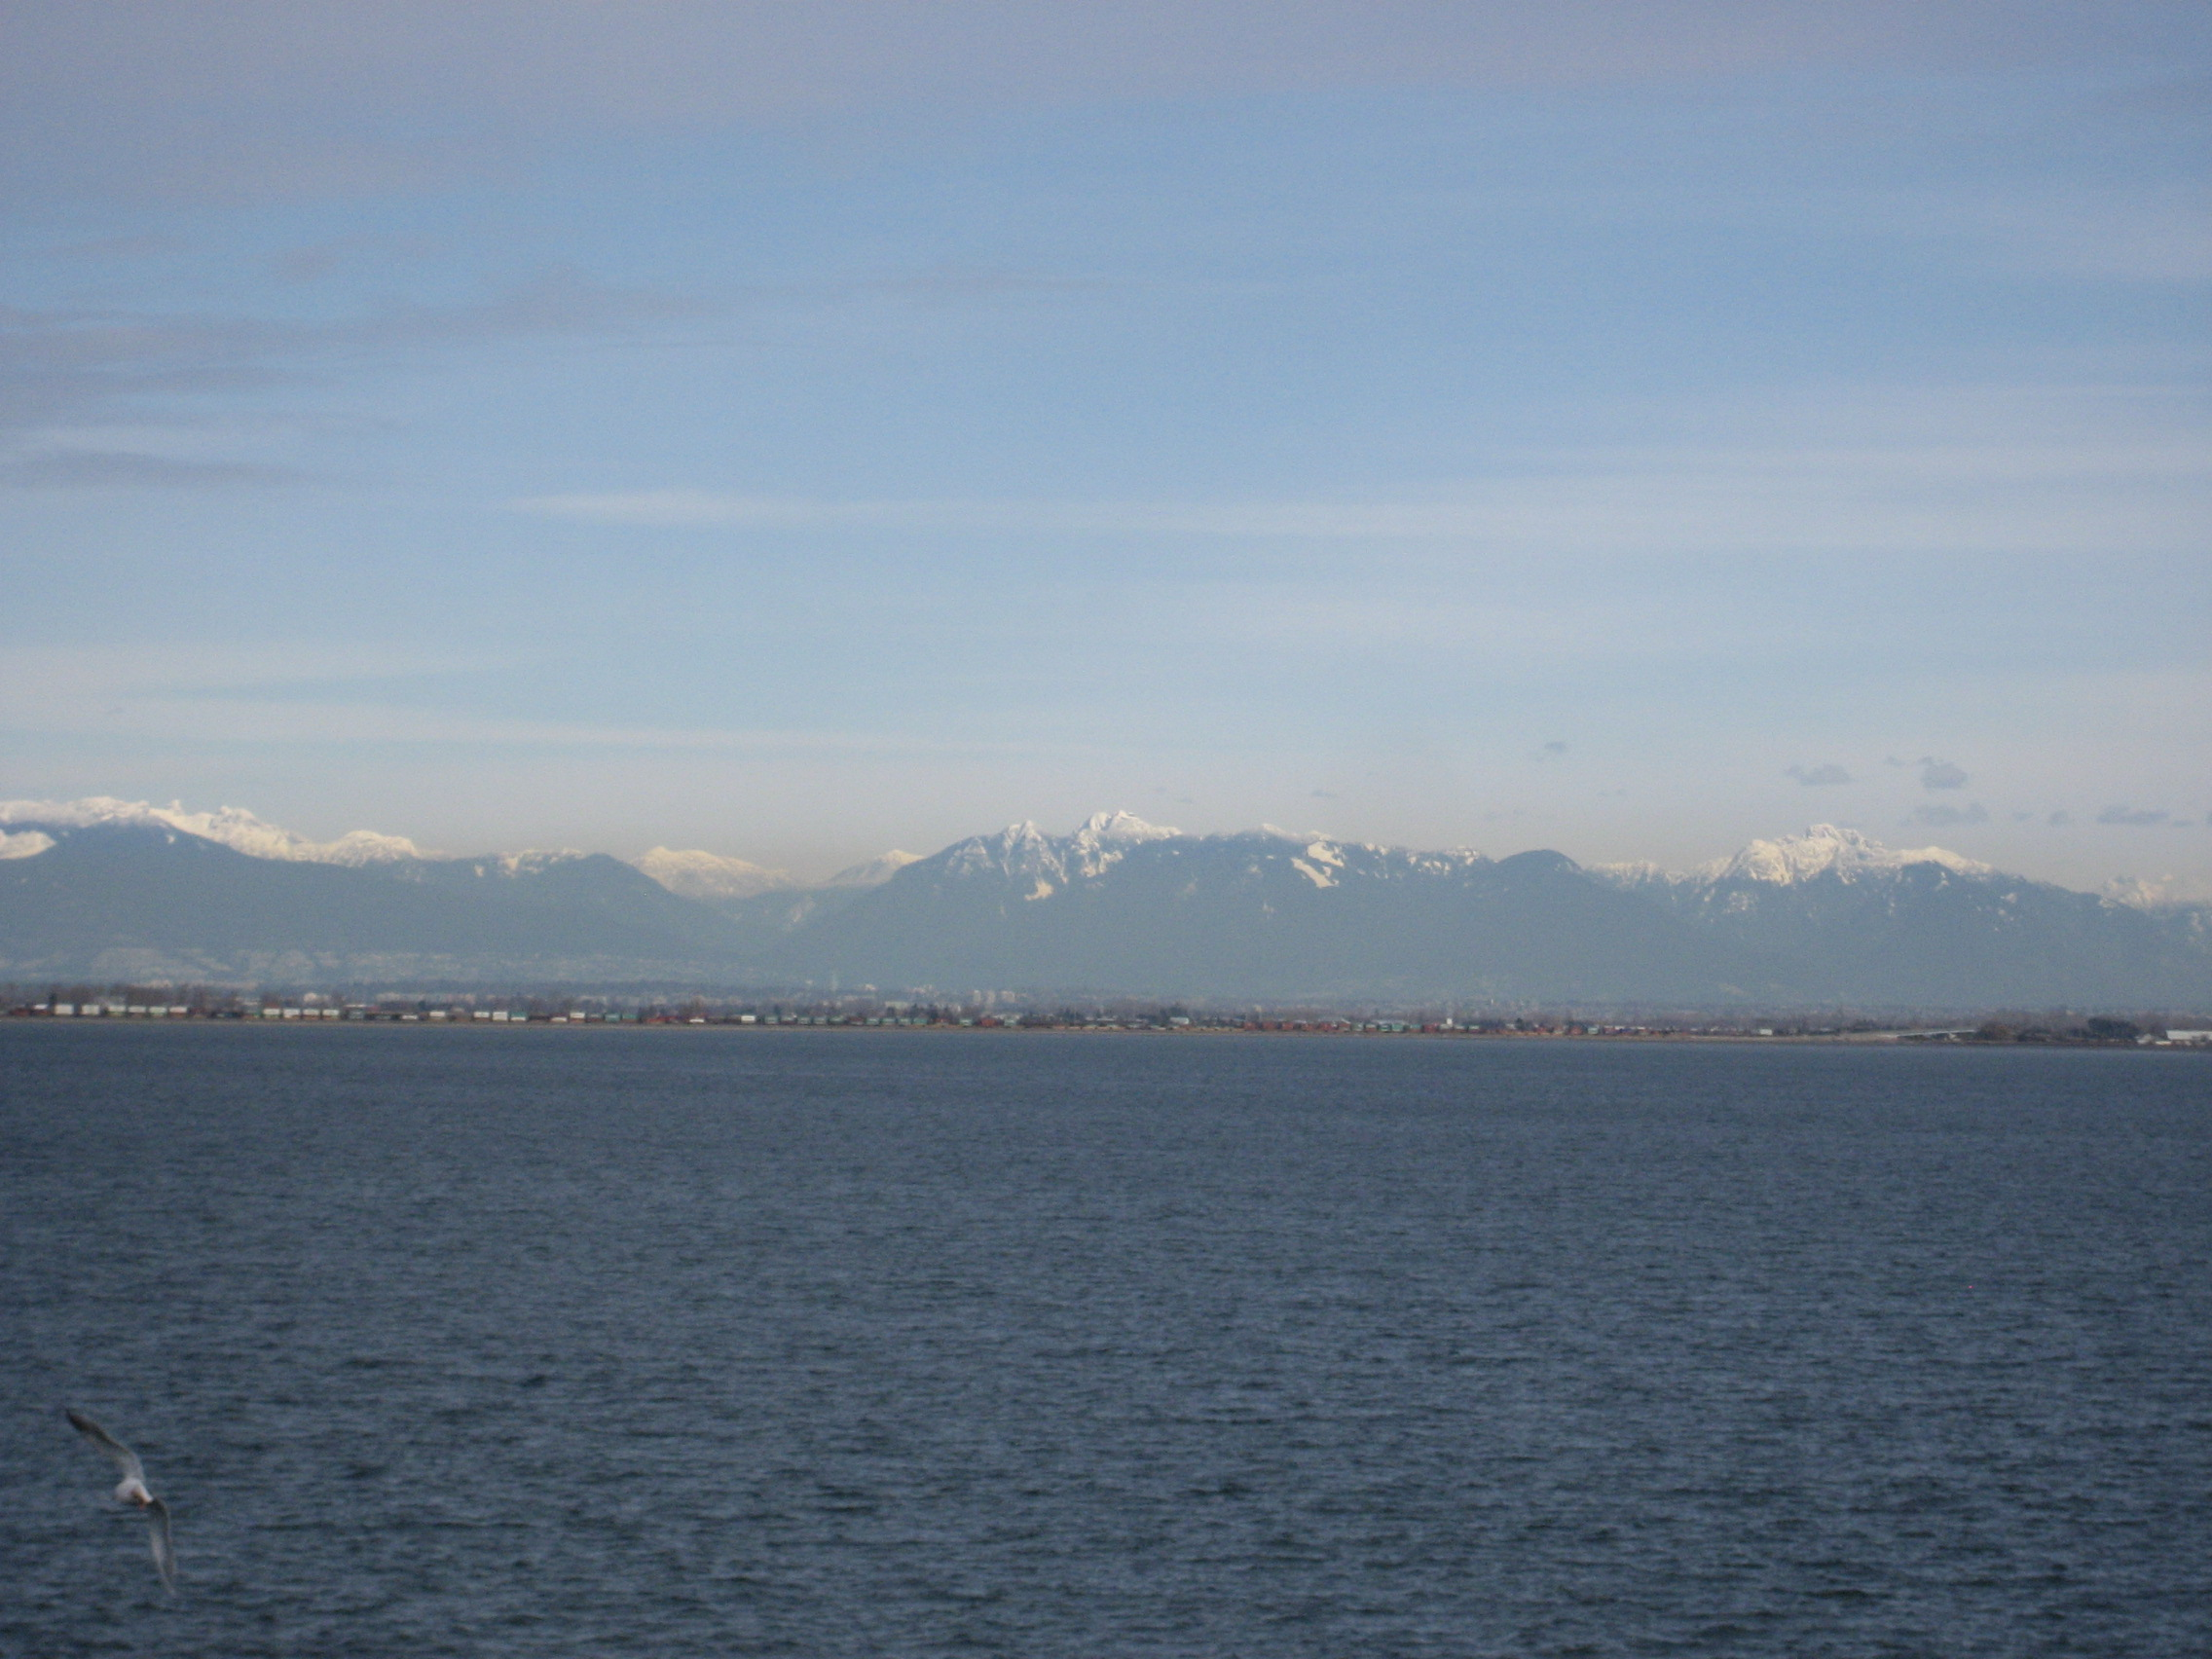 Pacific Ocean outside Vancouver